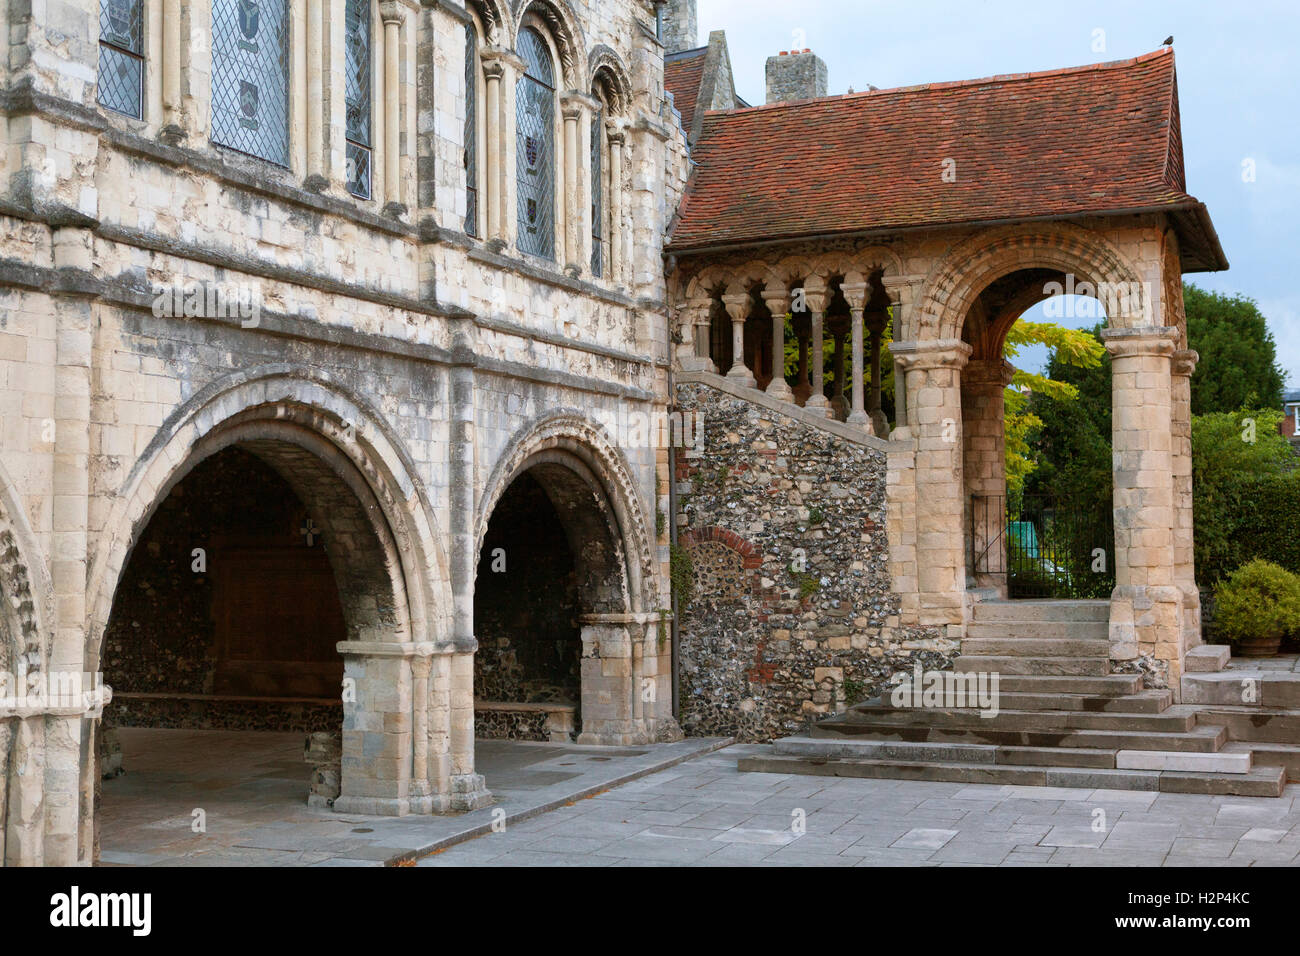 The King's School, Canterbury, showing the famous Norman staircase - Stock Image